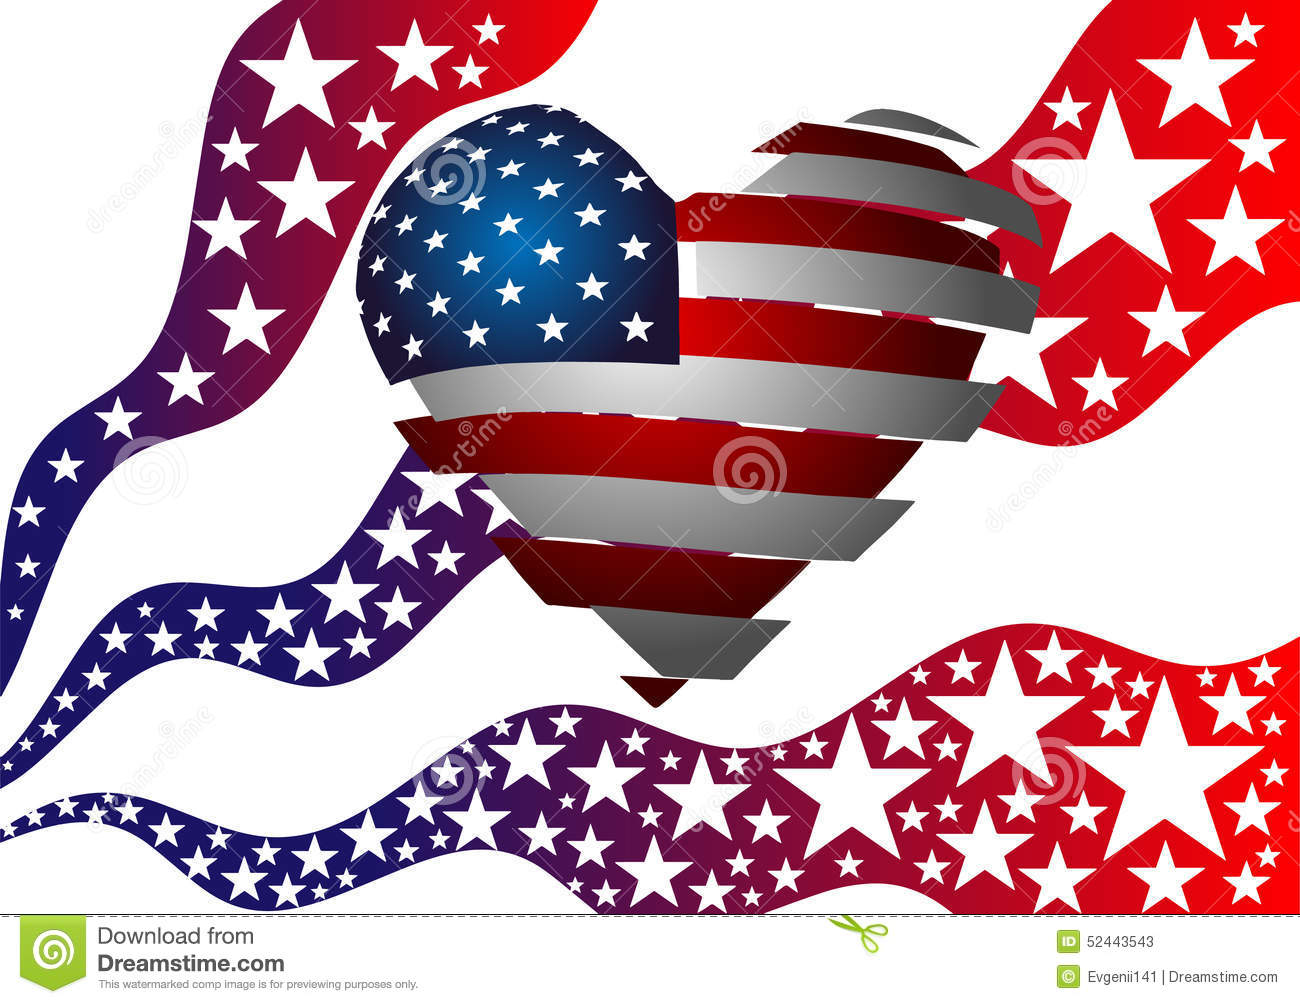 The Symbolism Of The American Flag Heart Stars And Stripes Stock